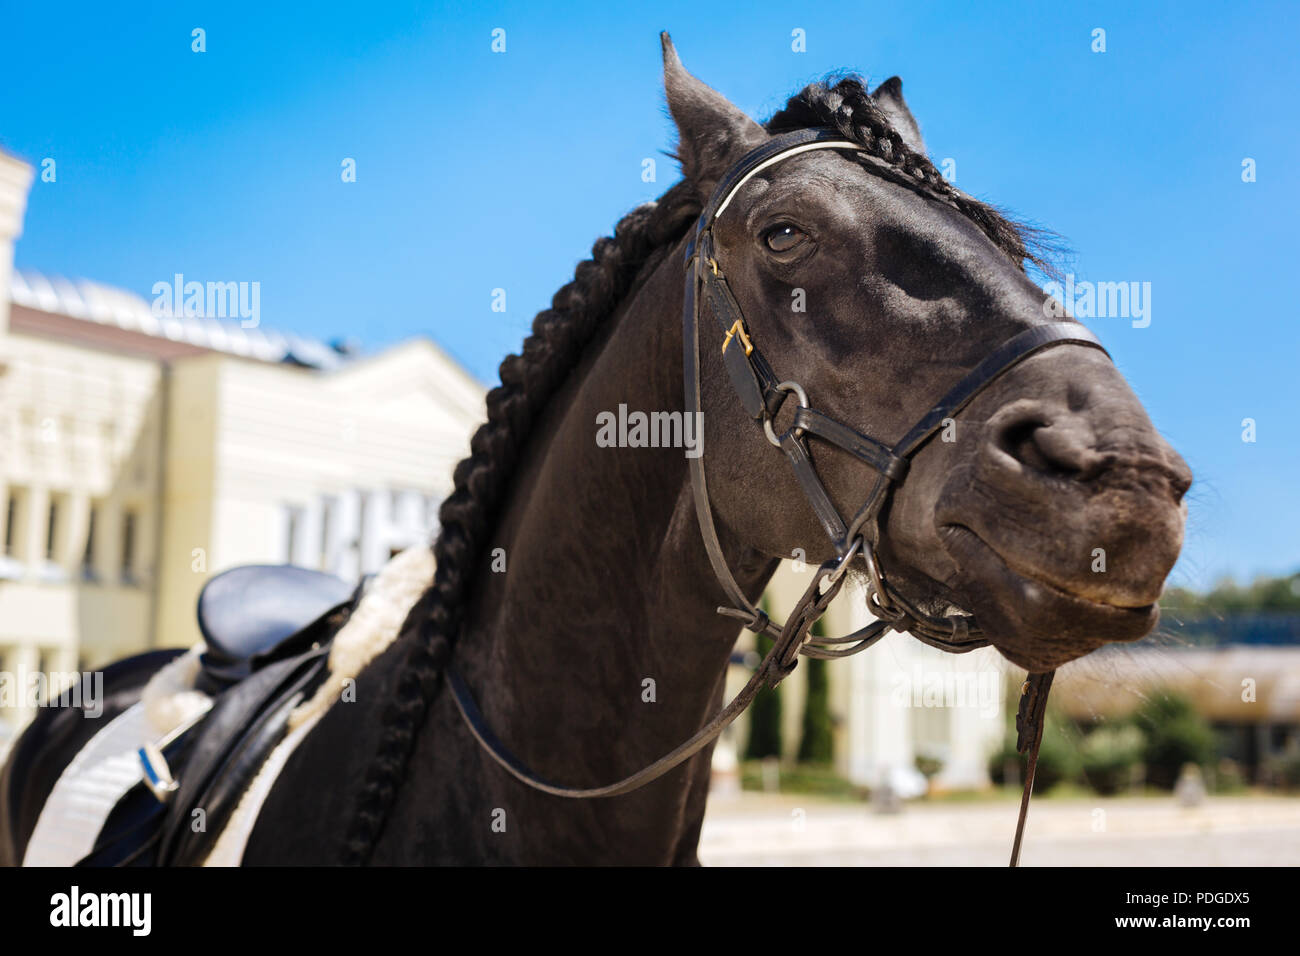 Black dark-eyed horse submissively standing on big race track Stock Photo